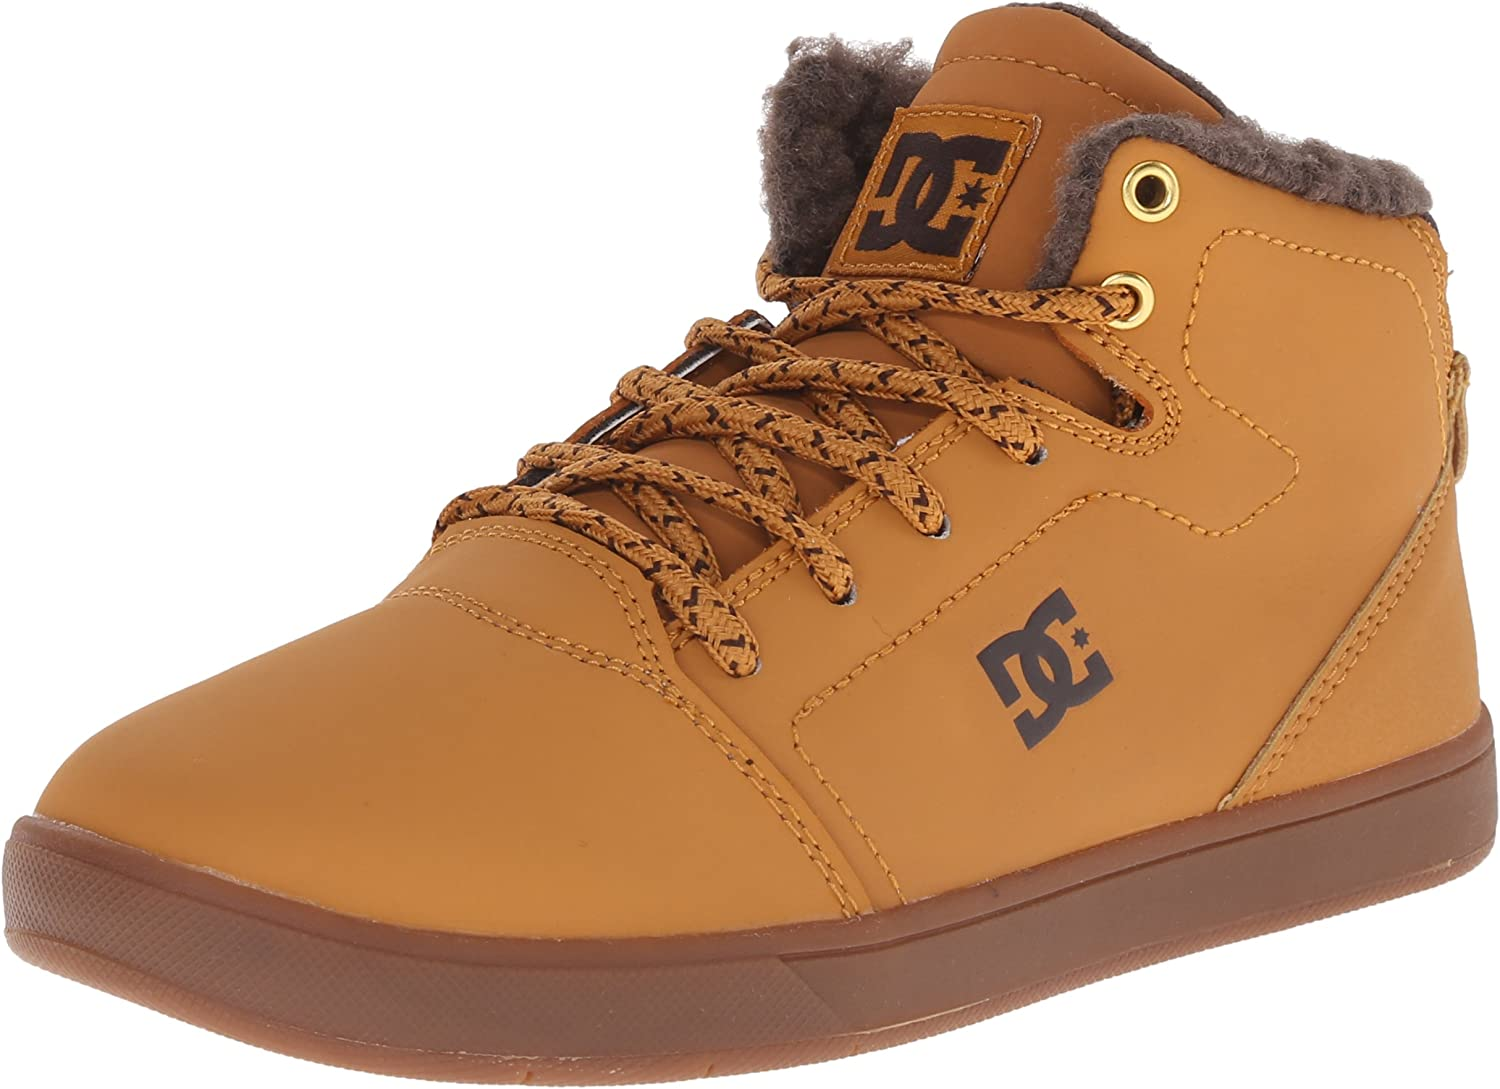 DC boys Crisis High Wnt Youth Shoes - K